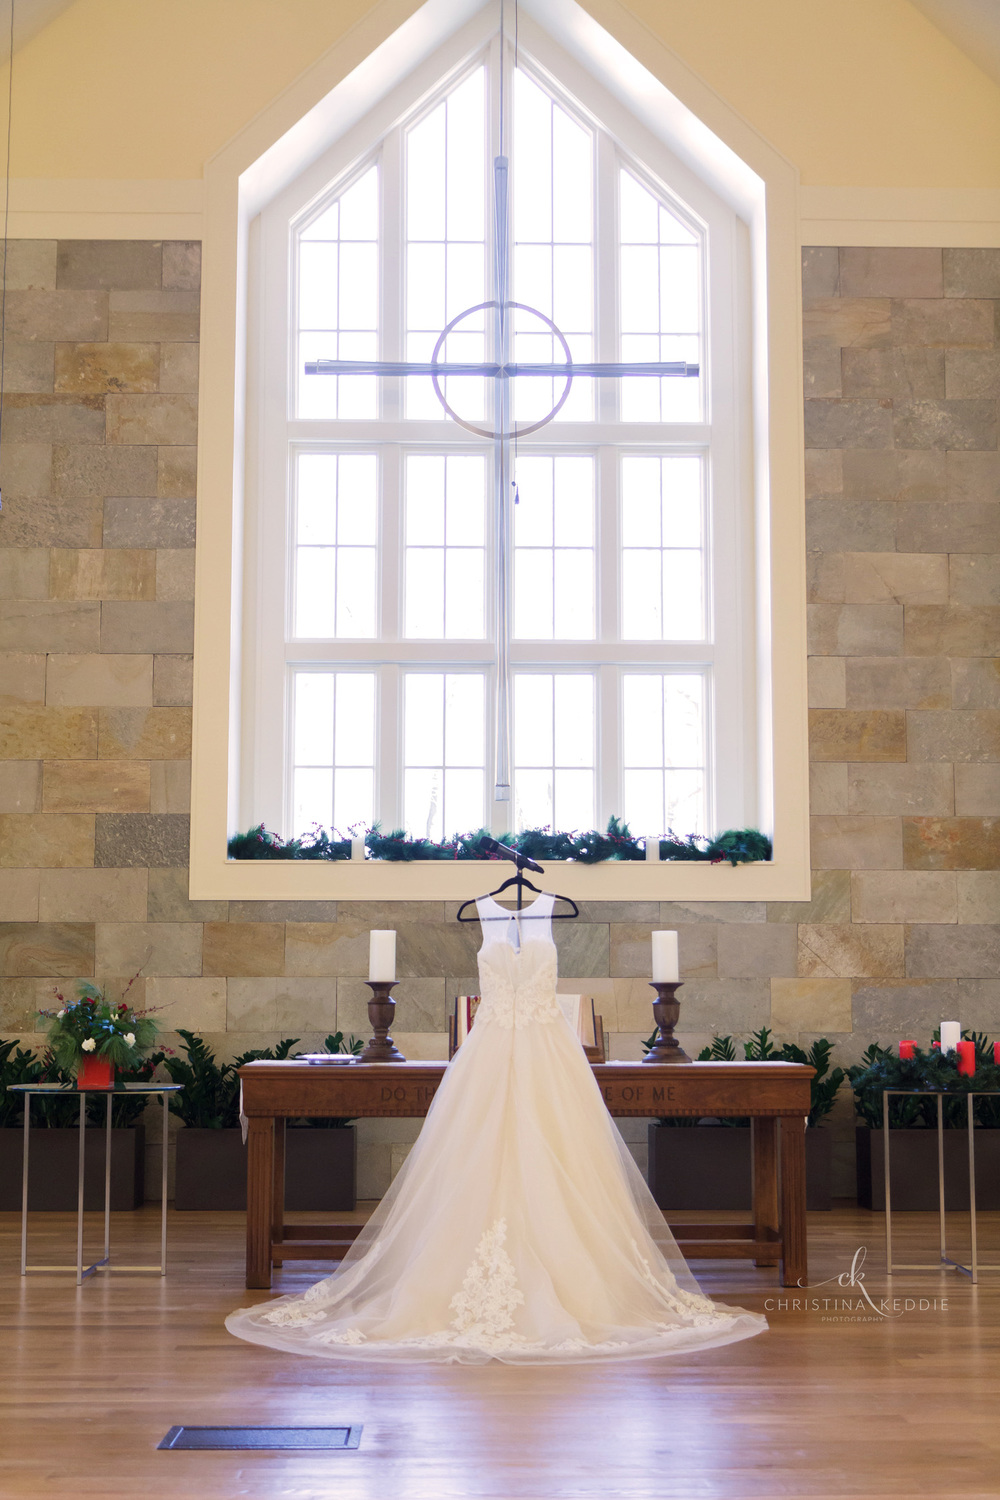 Wedding gown displayed in church sanctuary at altar | Christina Keddie Photography | Princeton NJ wedding photographer